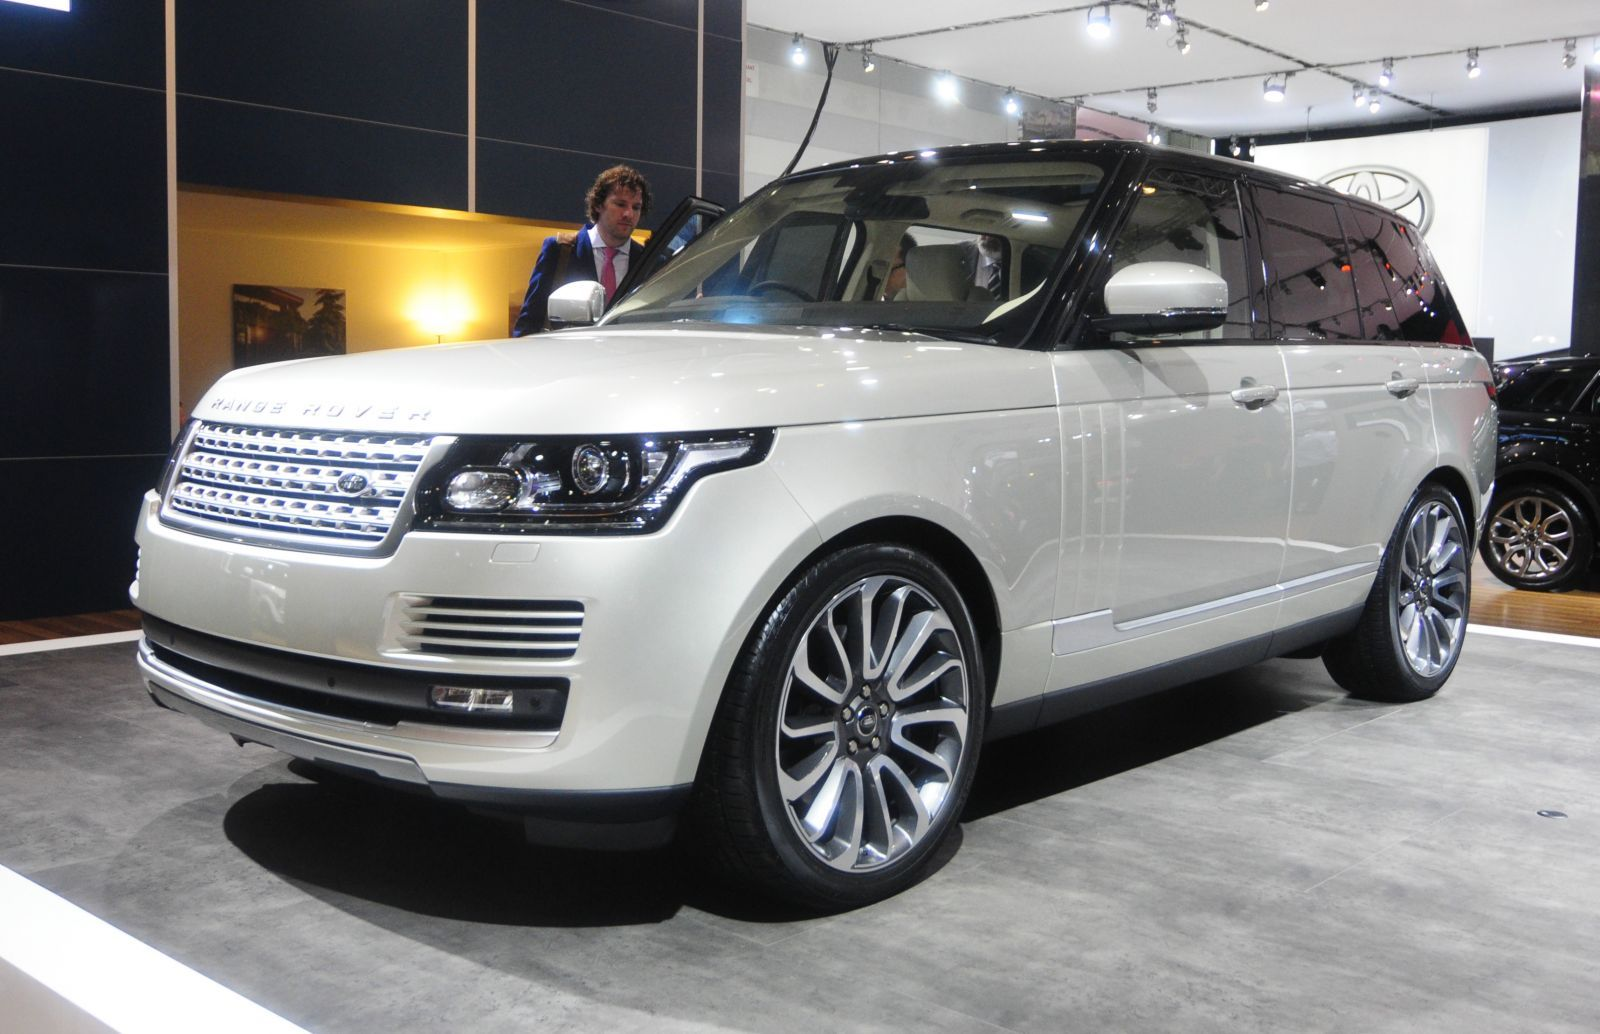 2013 Range Rover Unveiled At Australian International